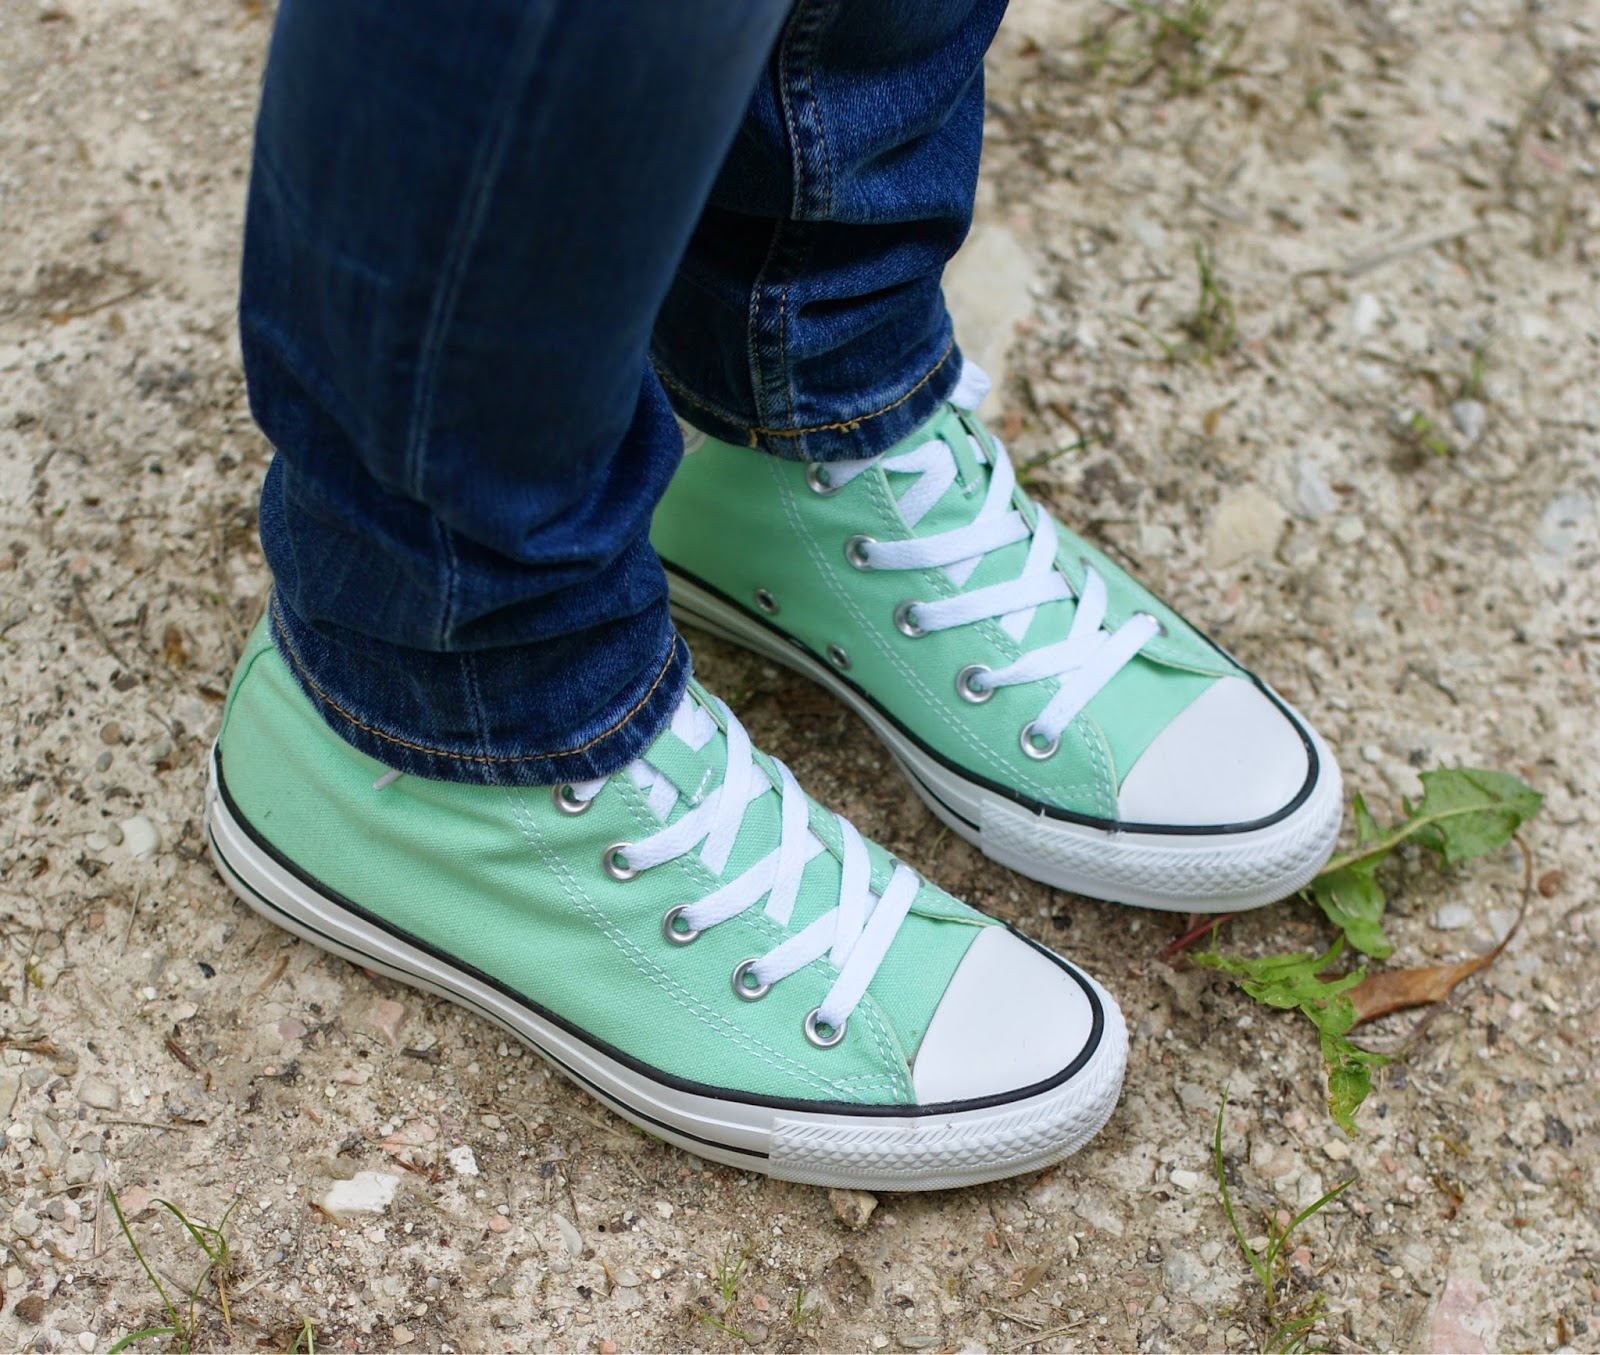 Mint converse shoes, Fashion and Cookies, fashion blogger